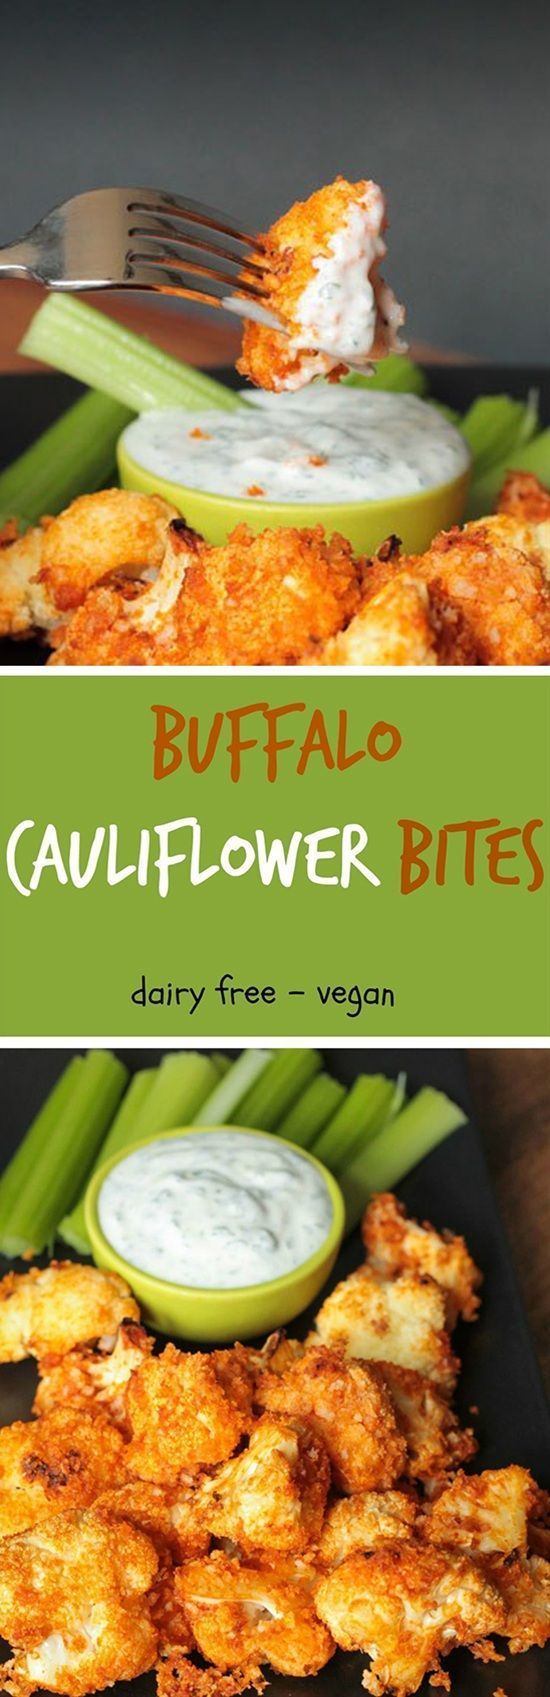 People usually say that vegans don't enjoy their food, as there aren't many delicious meals to choose from. Well, we are here today to prove them wrong, we brought you 26 yummy vegan recipes that no one can resist, and that's just a small portion of what